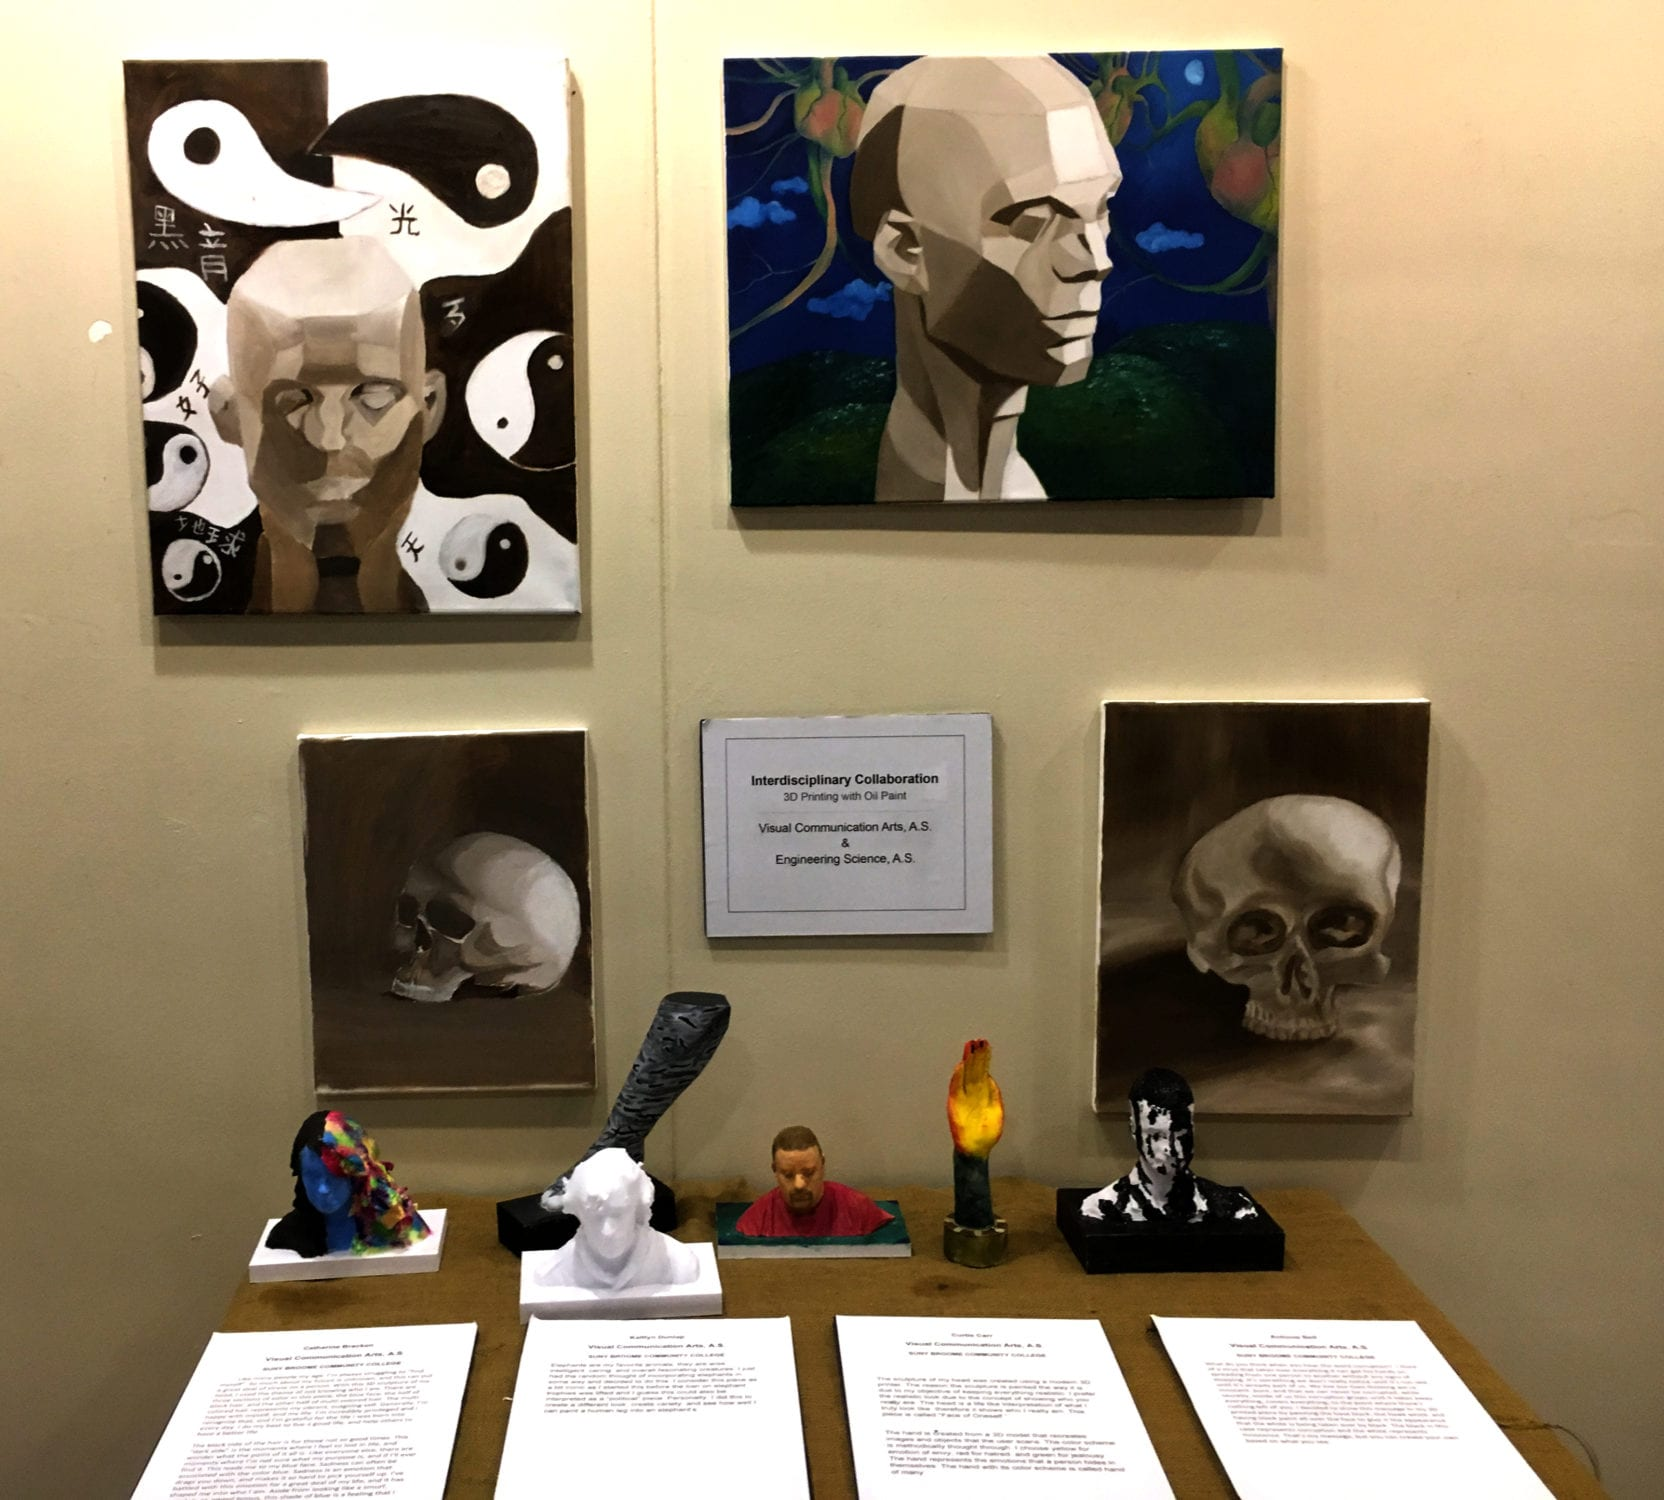 Annual Student Art Exhibition Jan. 4-11 in the Gallery